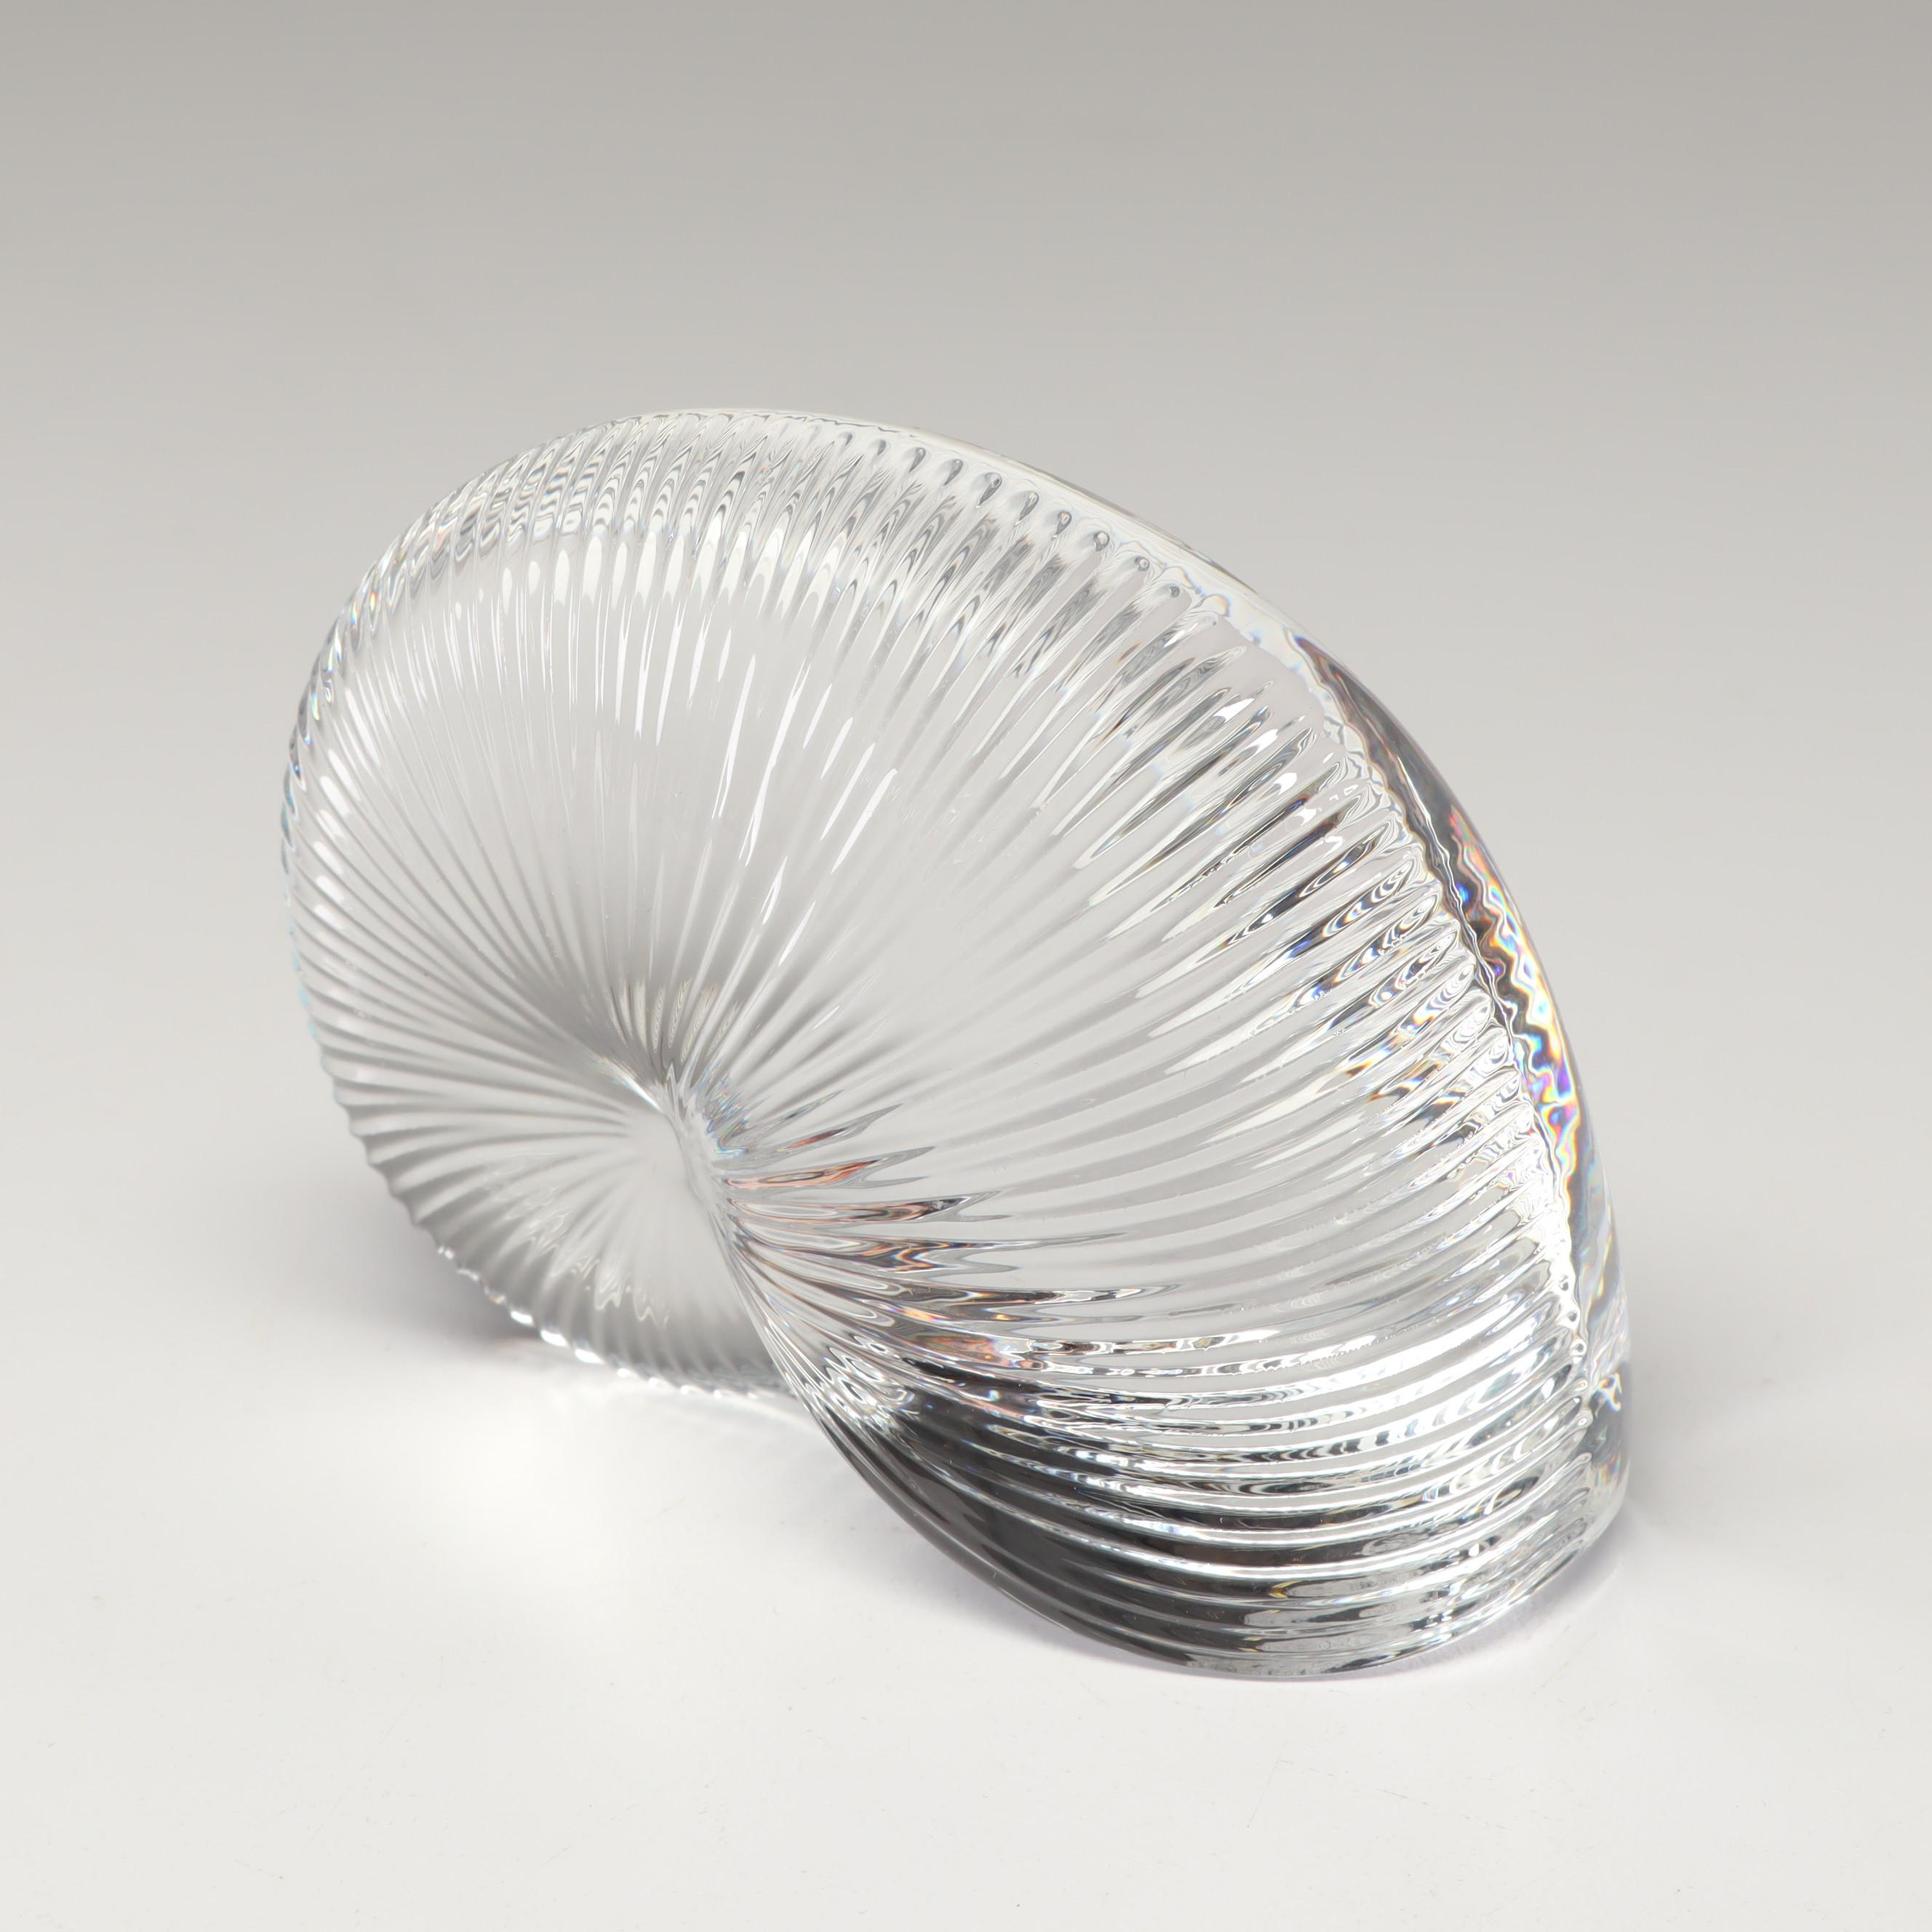 Baccarat Crystal Nautilus Shell Paperweight